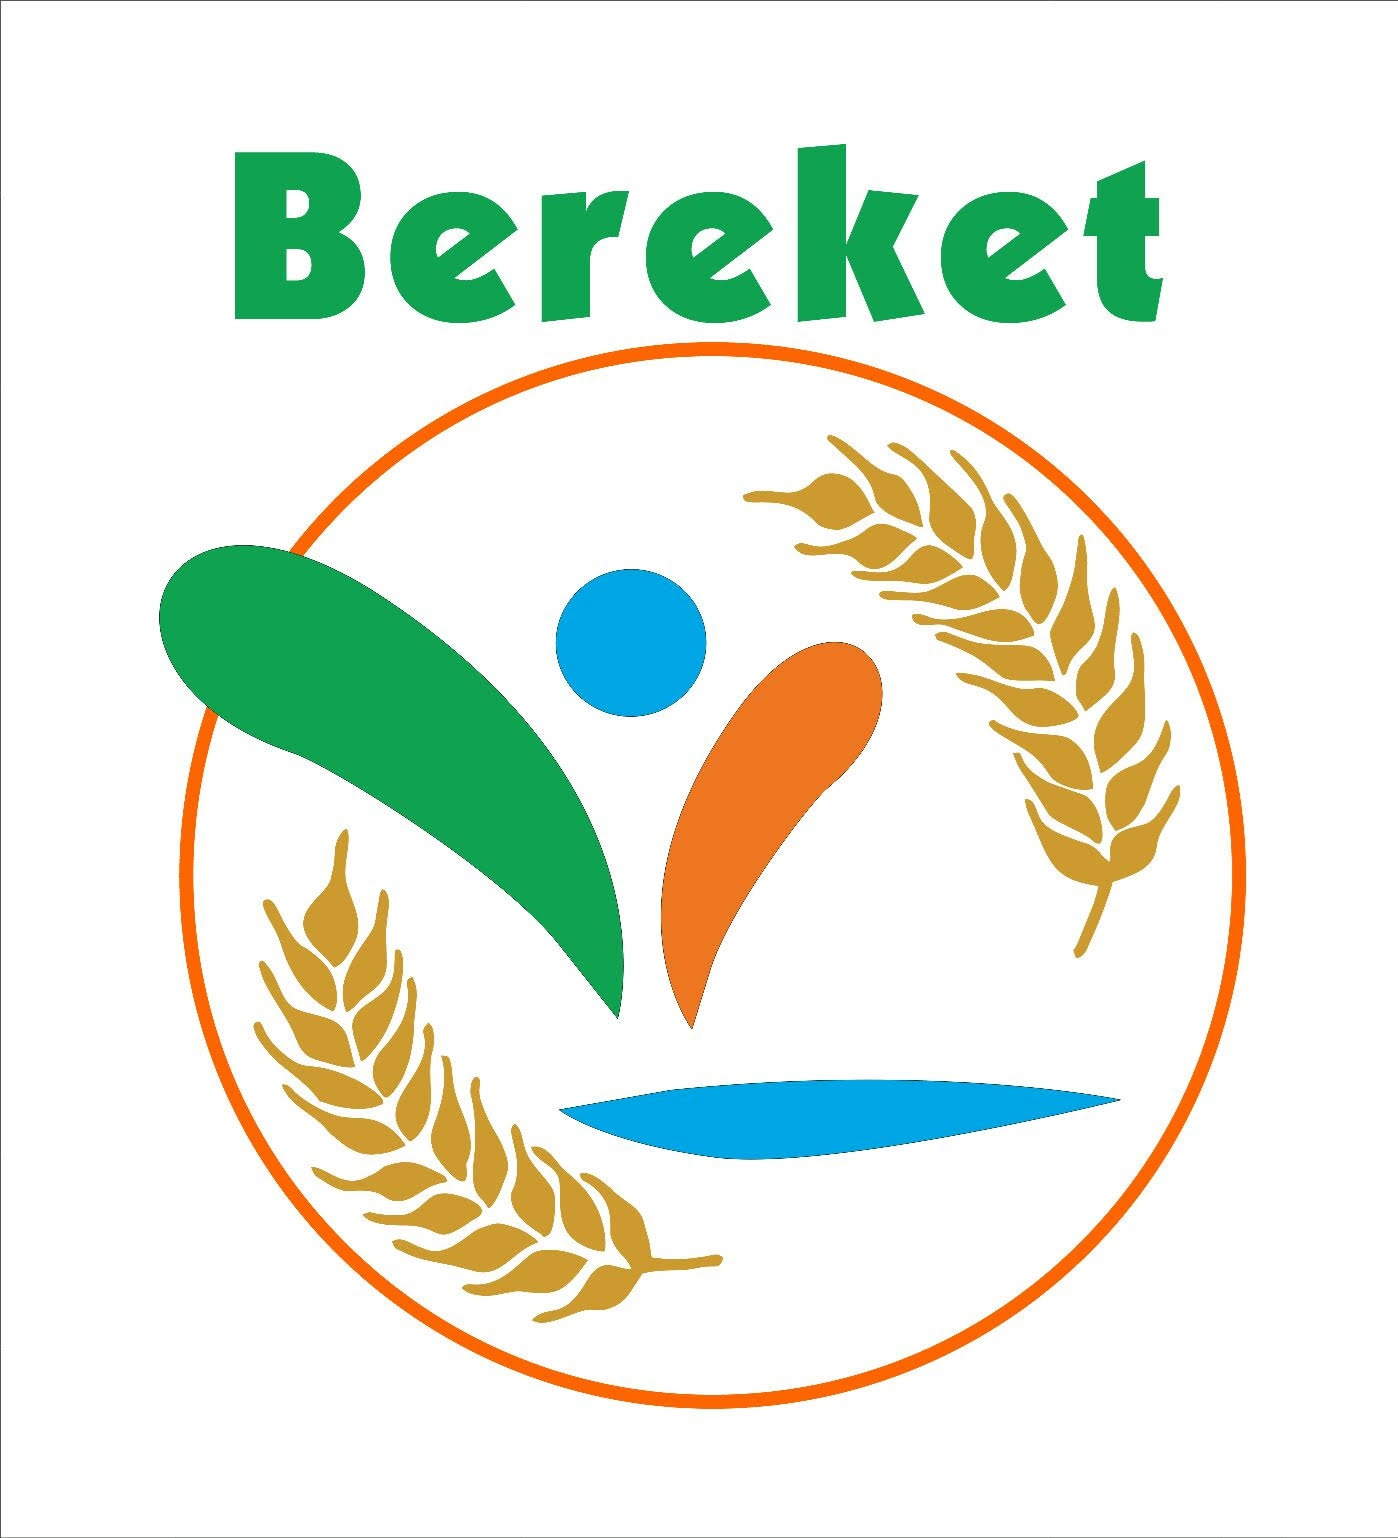 Picture for vendor Bereket Süpermarket